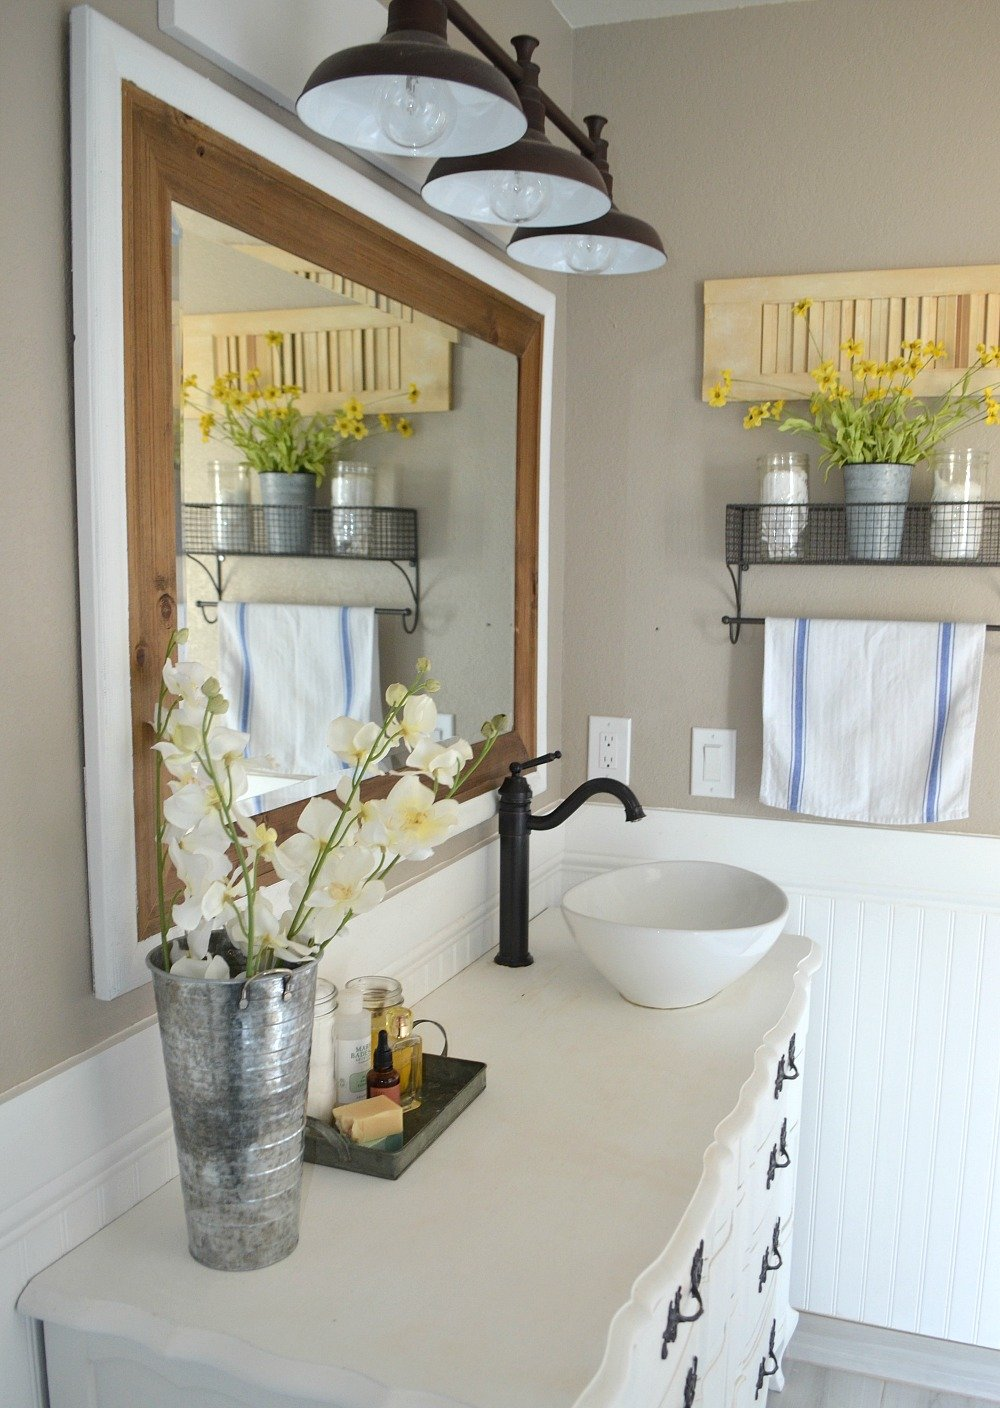 Modern Farmhouse Bathroom Decor. An honest review of chalk painted bathroom vanities.